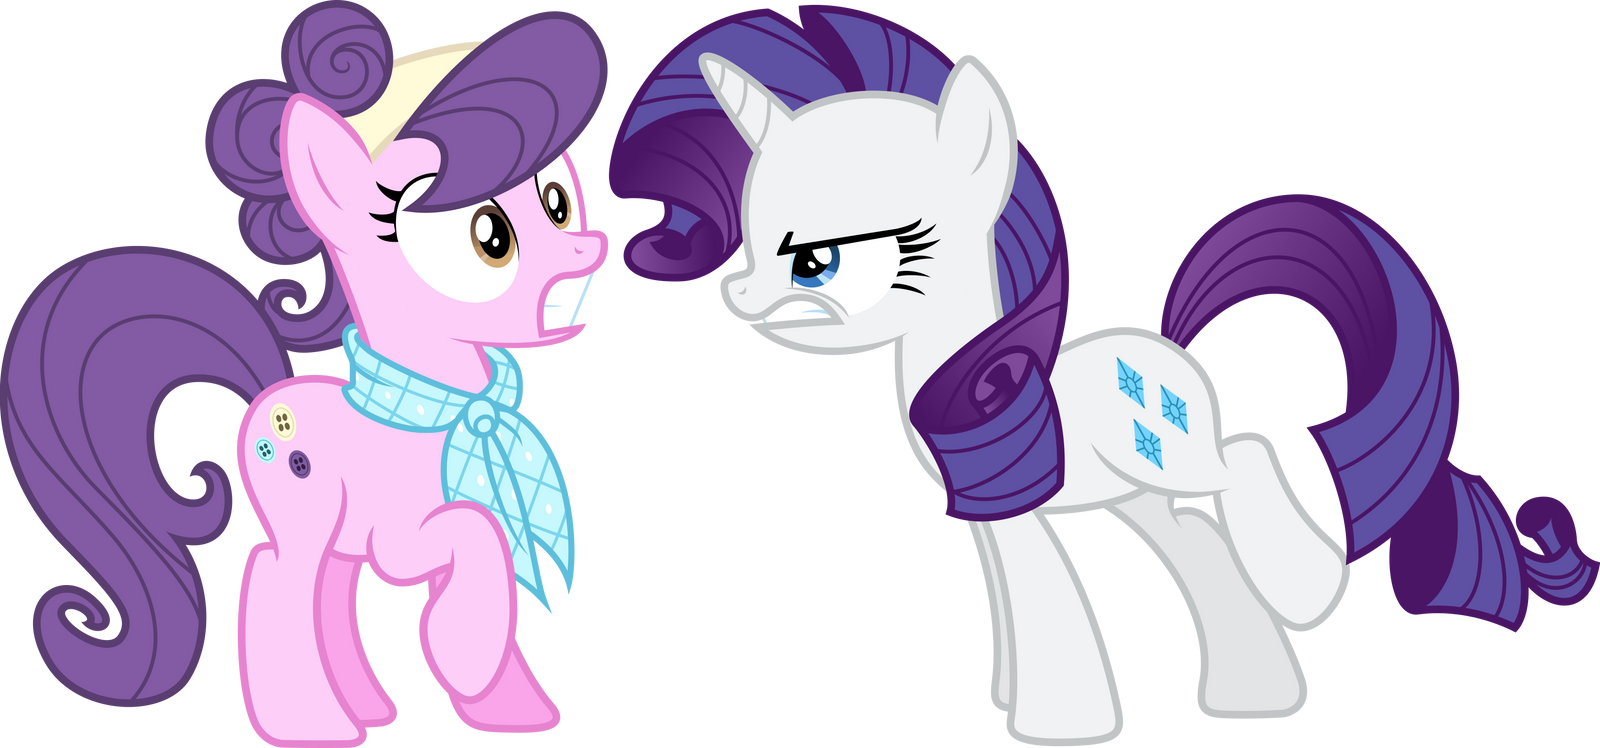 Everypony for herself, eh? by mehoep